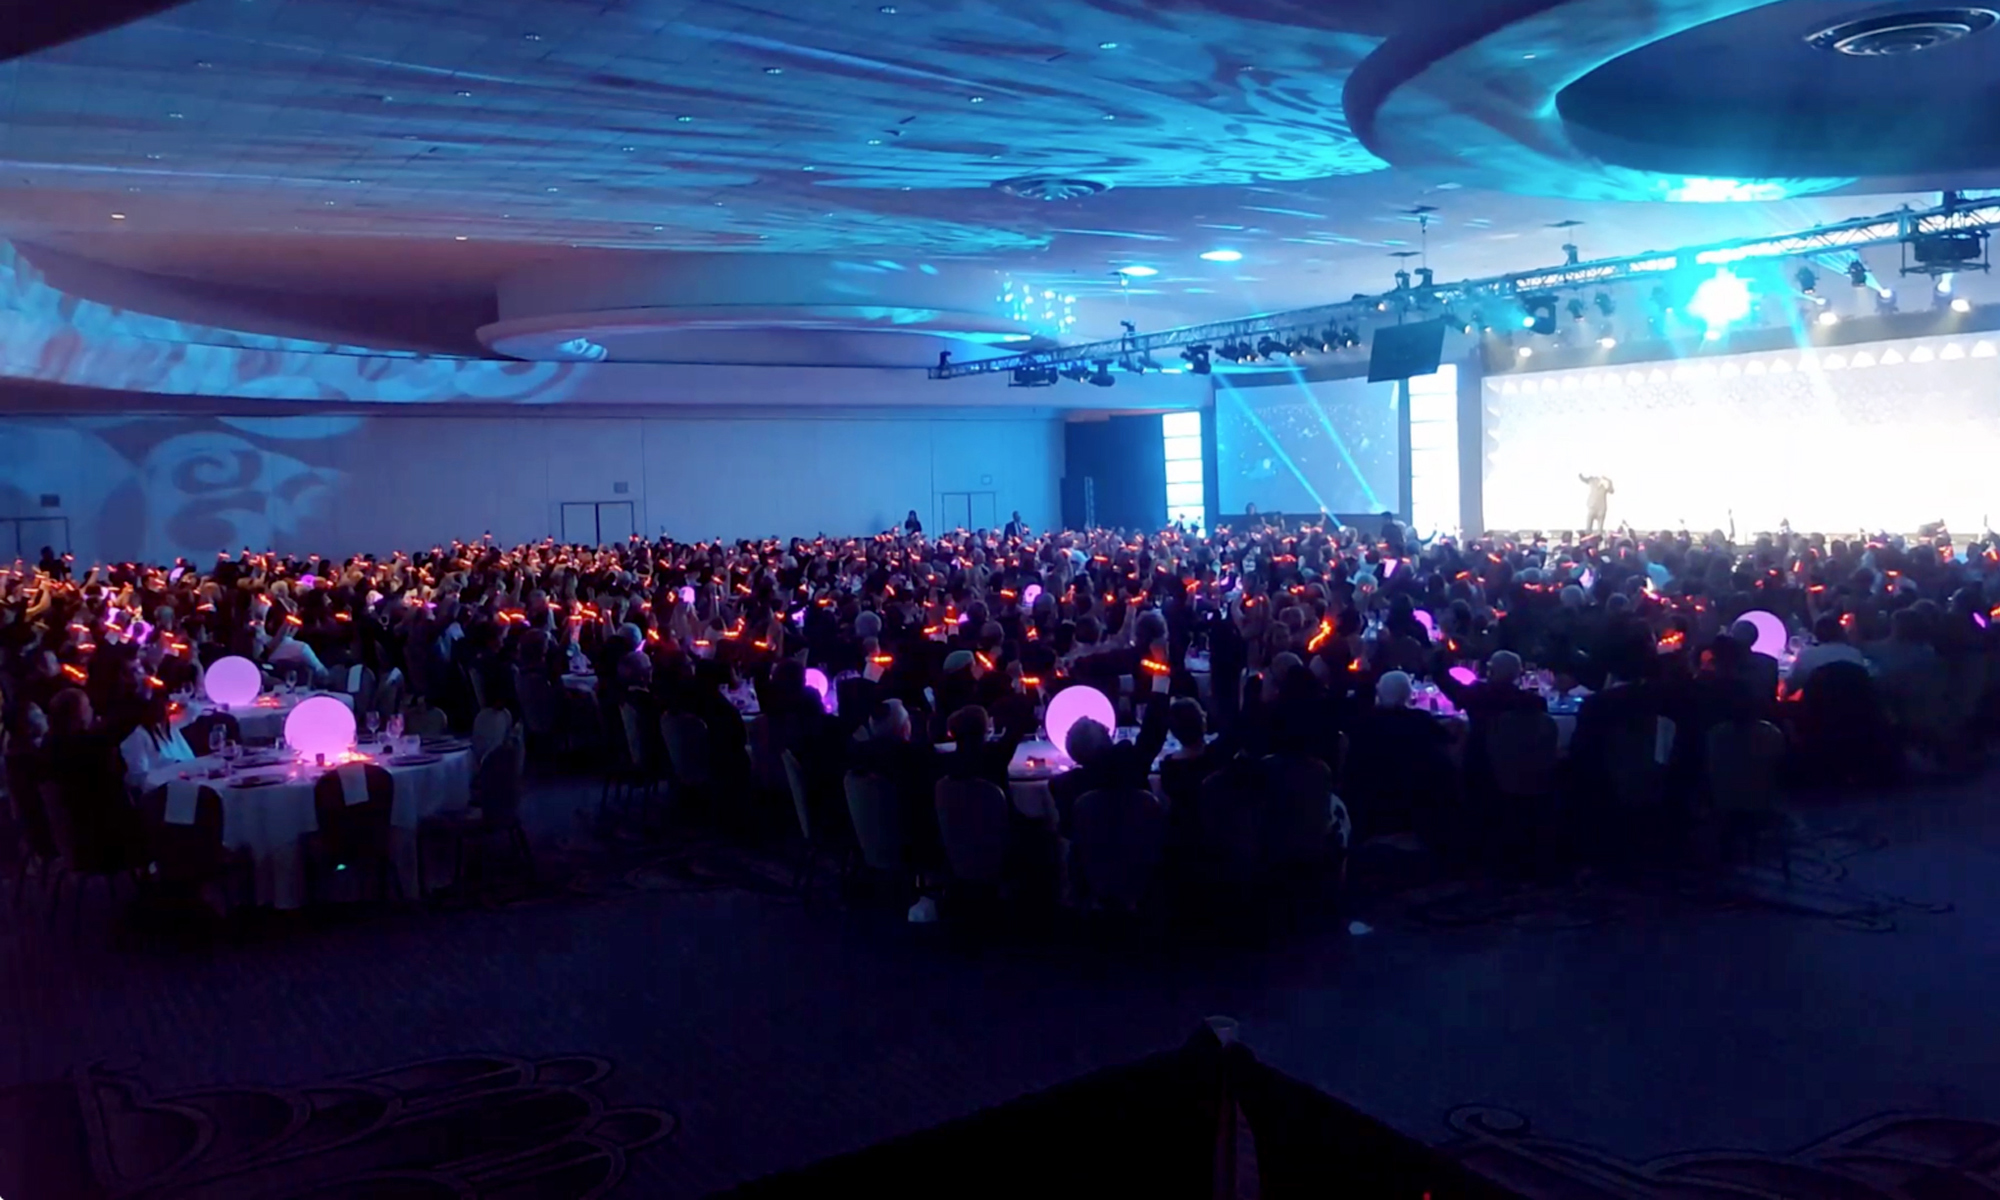 XylobandsUSA LED wristbands LIGHT UP special events